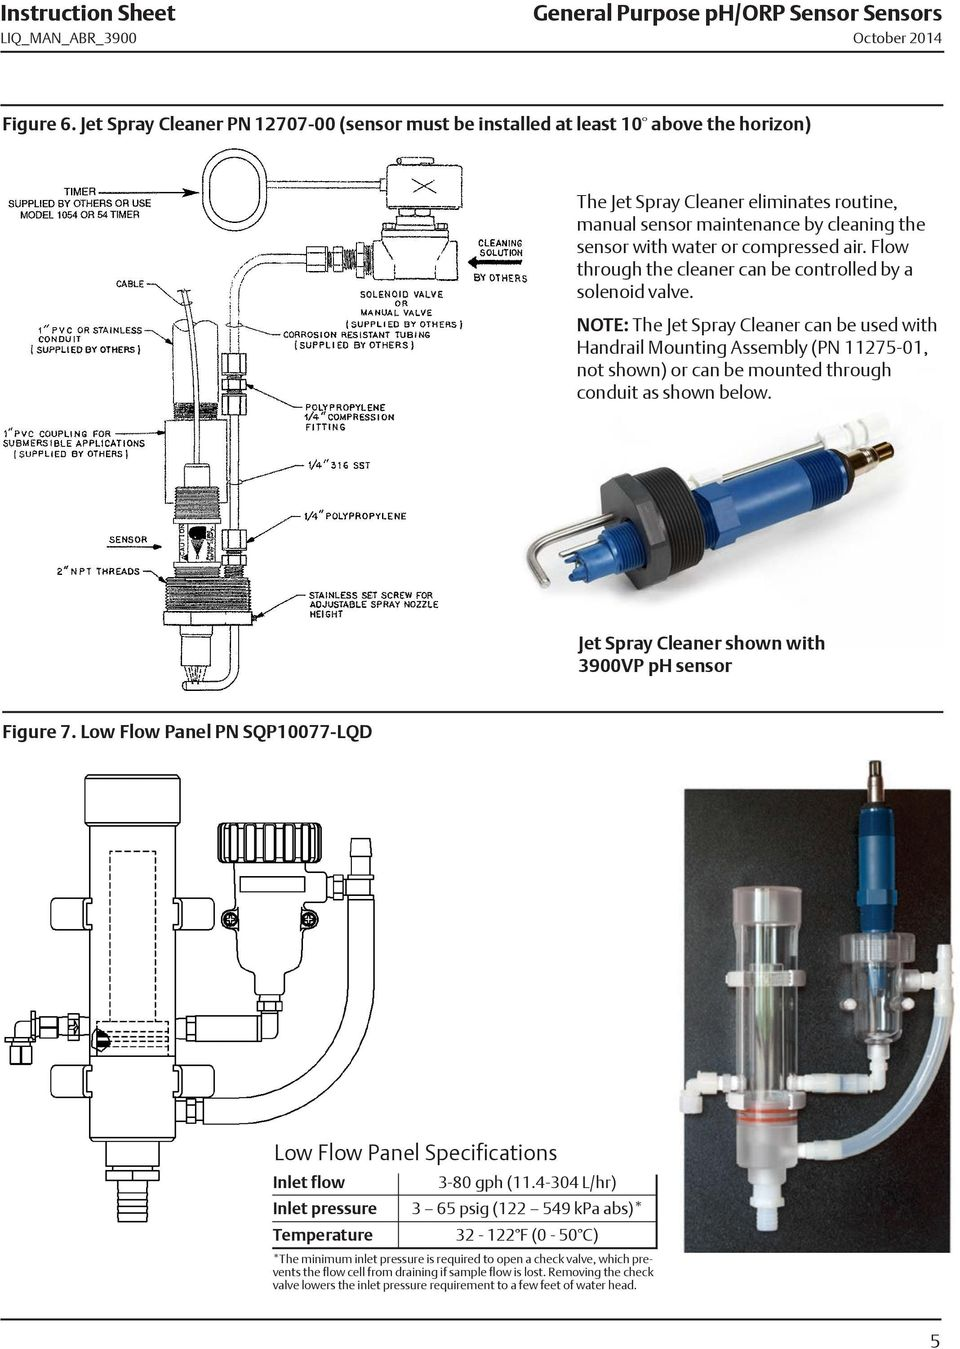 compressed air. Flow through the cleaner can be controlled by a solenoid valve.